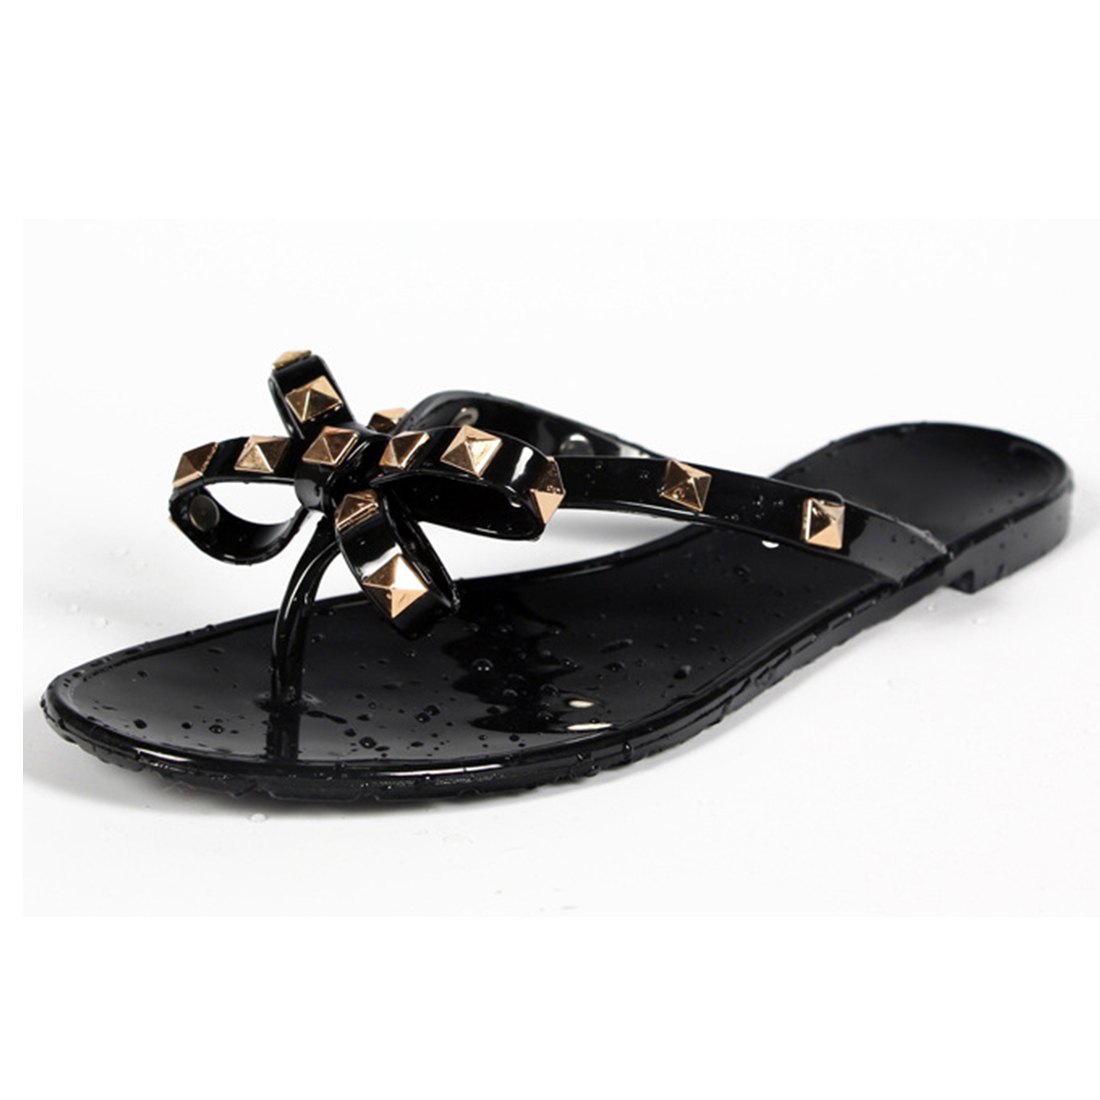 2ad04d60ecf8a New Summer Women Flip Flops Slippers Flat Sandals Bow Rivet Fashion Pvc  Crystal Beach Jelly Shoes-in Slippers from Shoes on Aliexpress.com